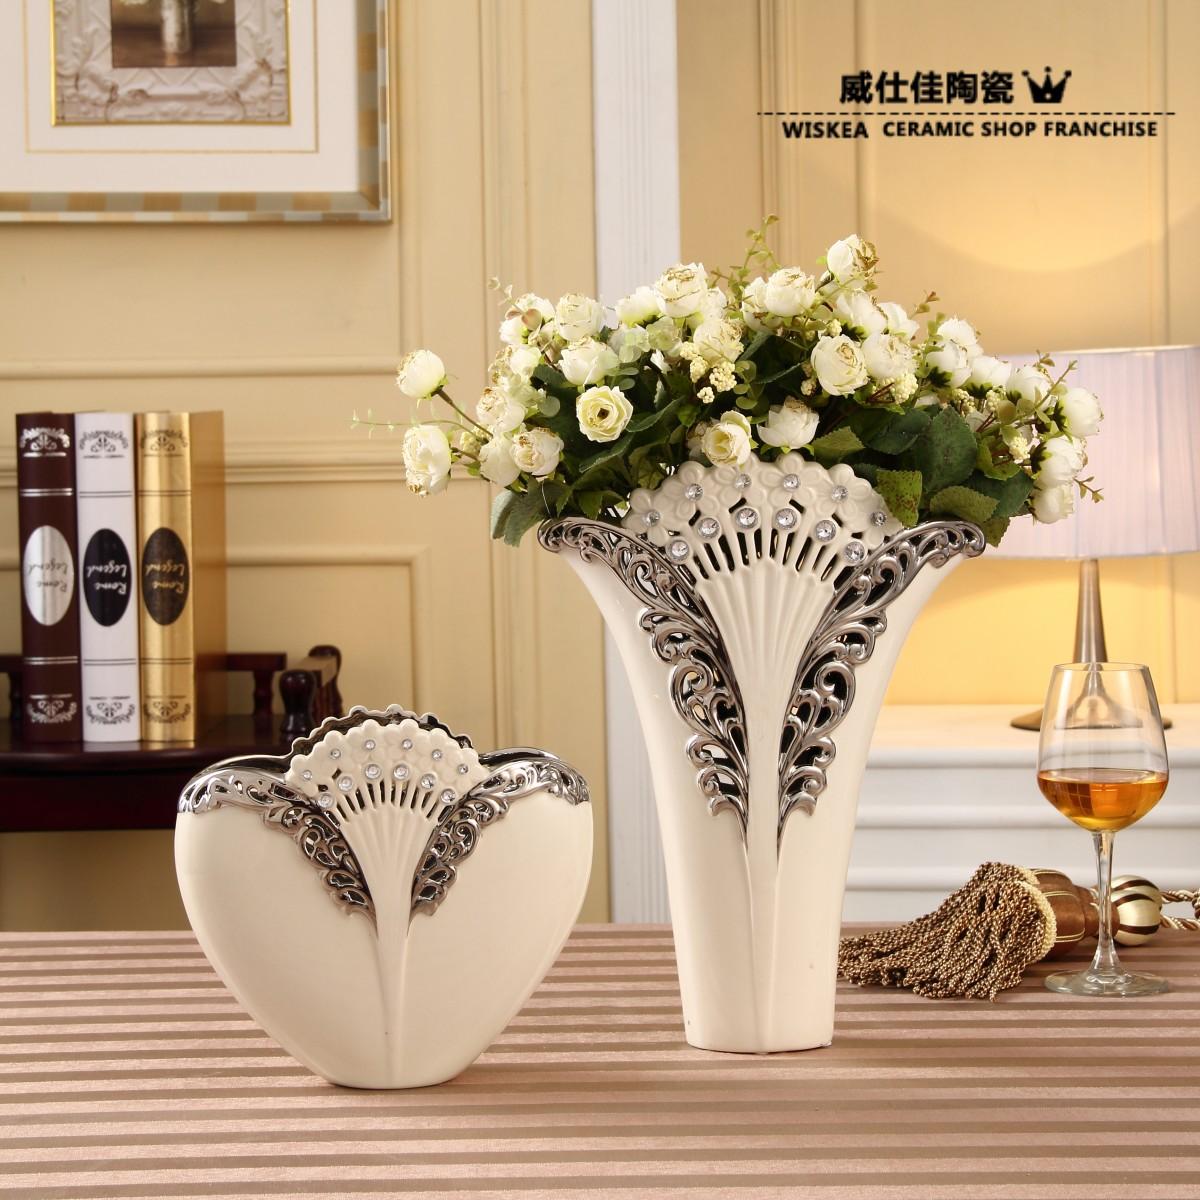 Flower vase decoration ideas best home design 2018 for Modern decorative items for home